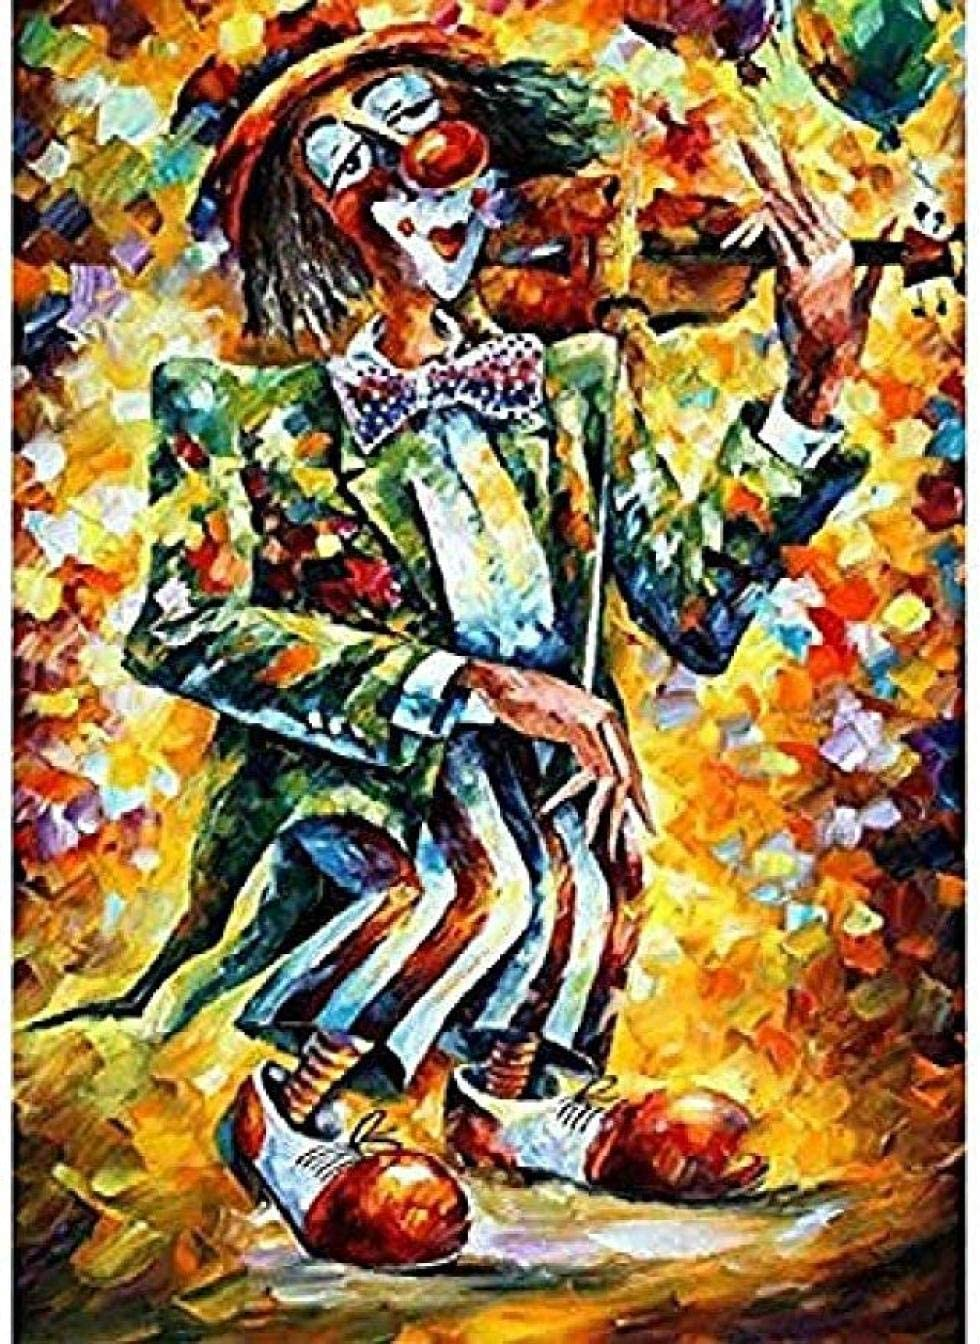 Without Framed Kpdar Paint by Numbers Kits for Adults and Kids Abstract Character Clown Violinist Diy Oil Painting Digital Canvas Wall Art Home Decoration 40X50Cm//15.80X 19.70 Inch